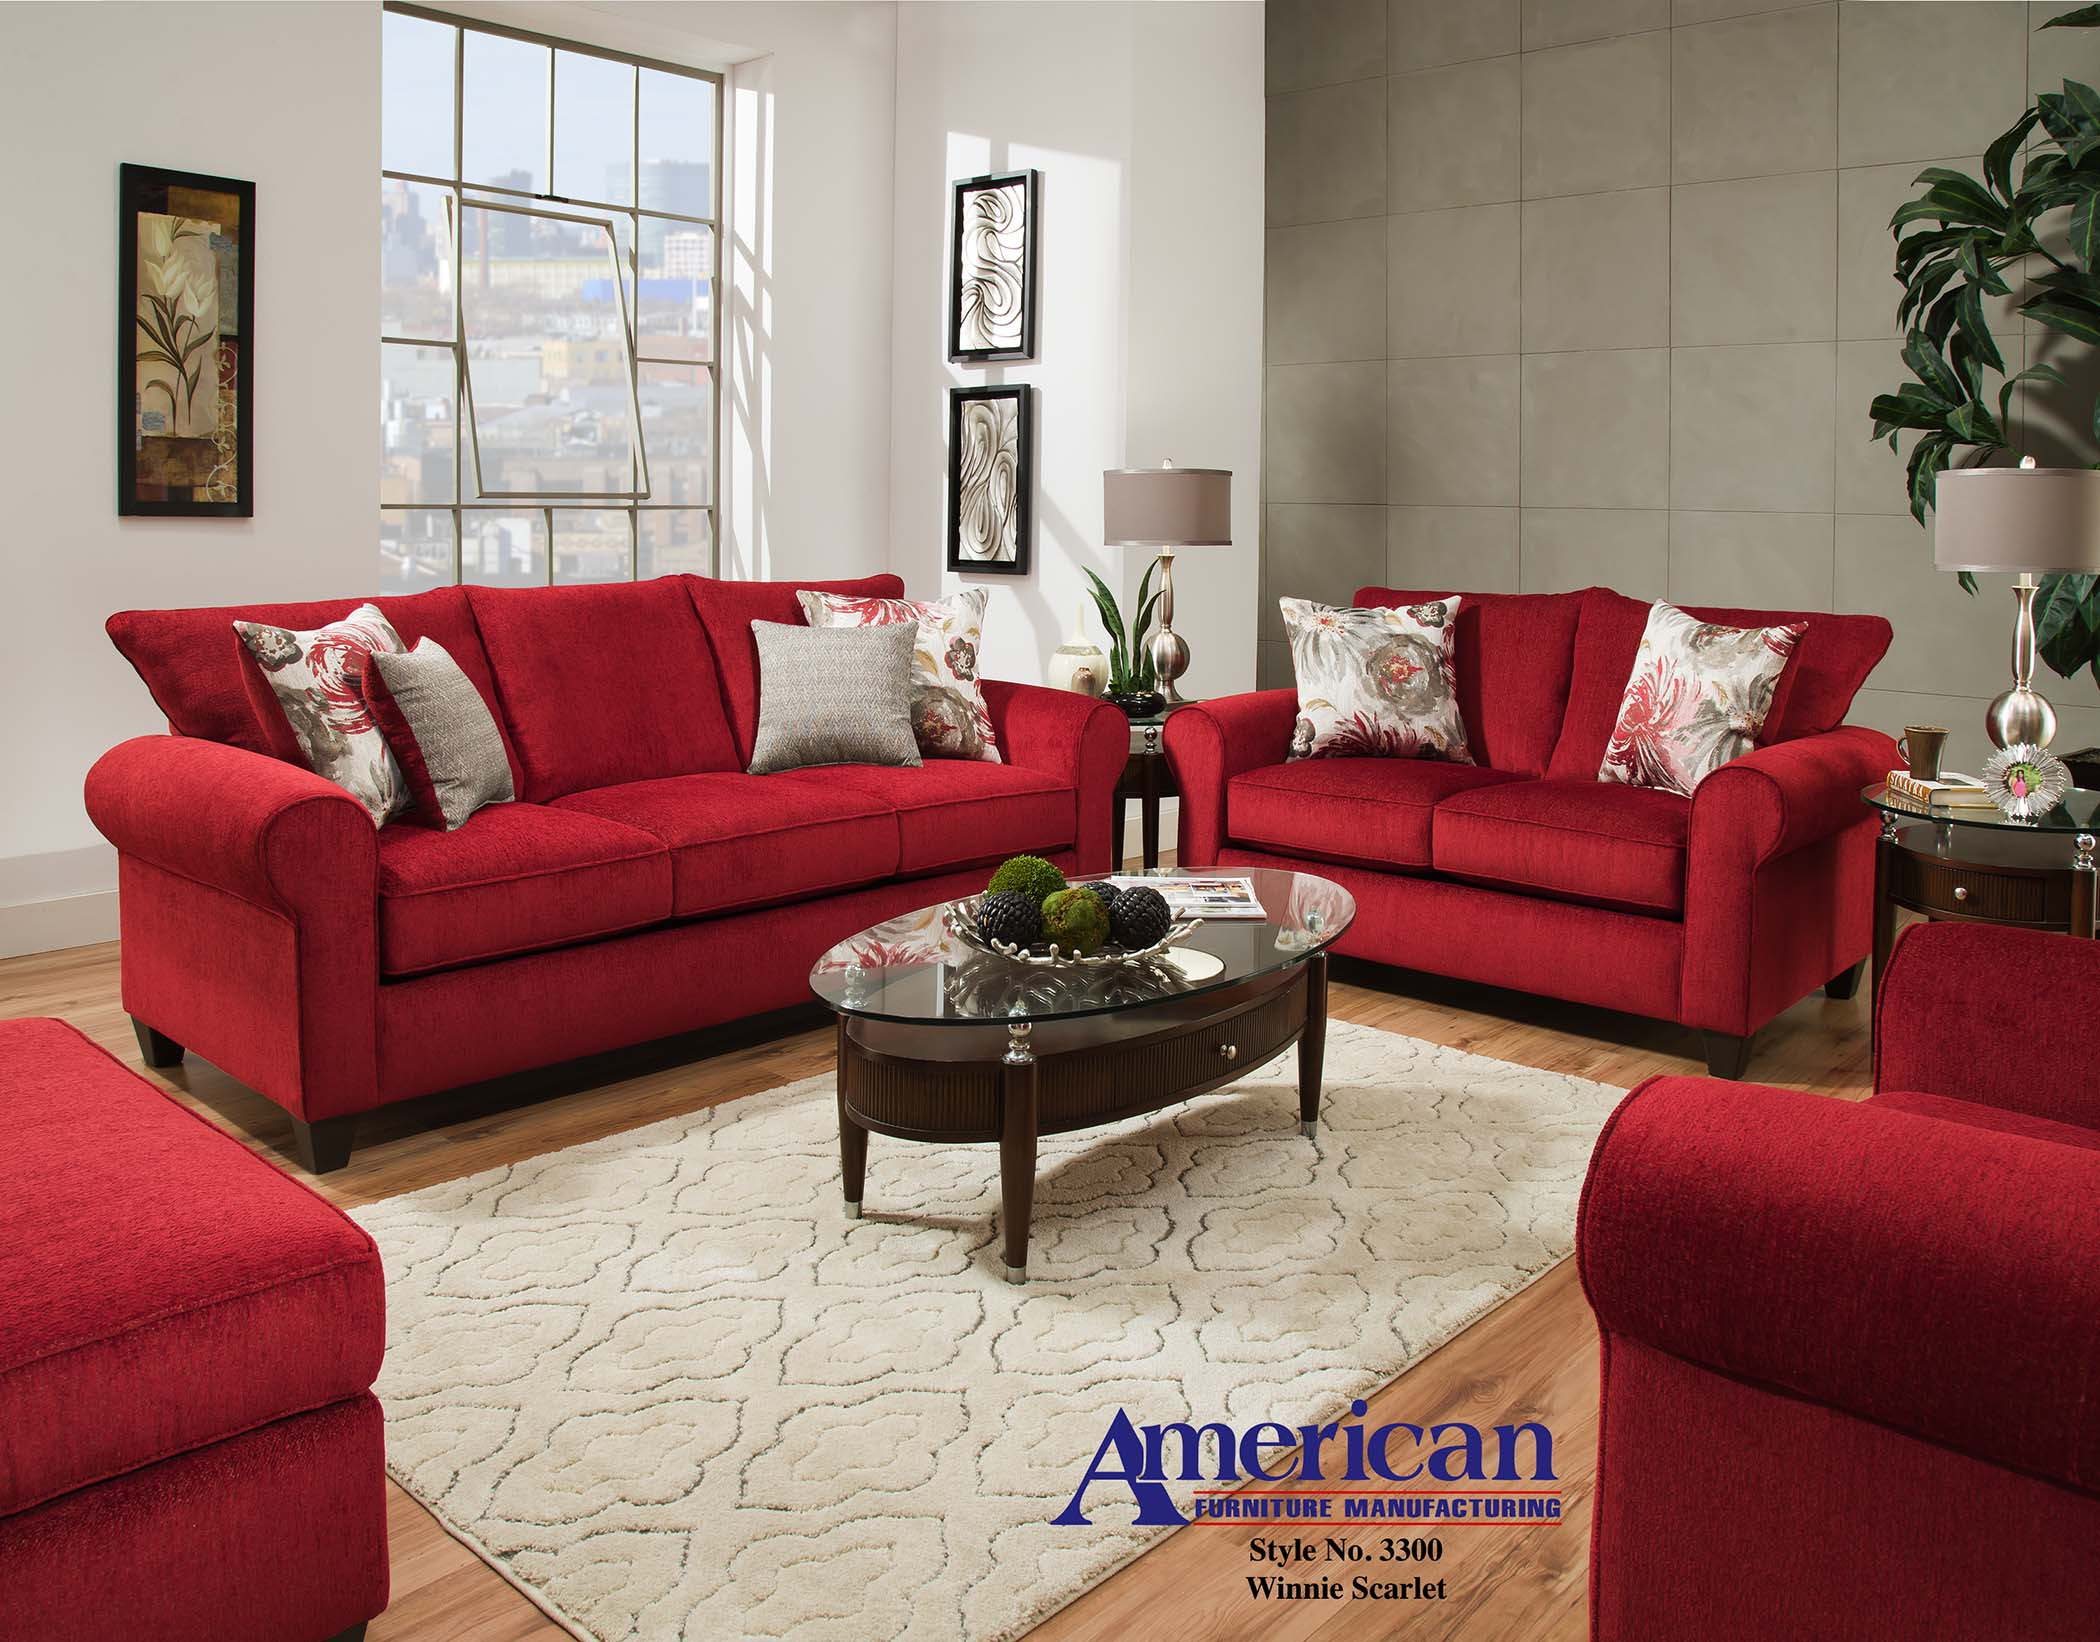 best sofas made in the usa abbyson living bedford gray linen convertible sleeper sectional sofa american manufacturers furniture